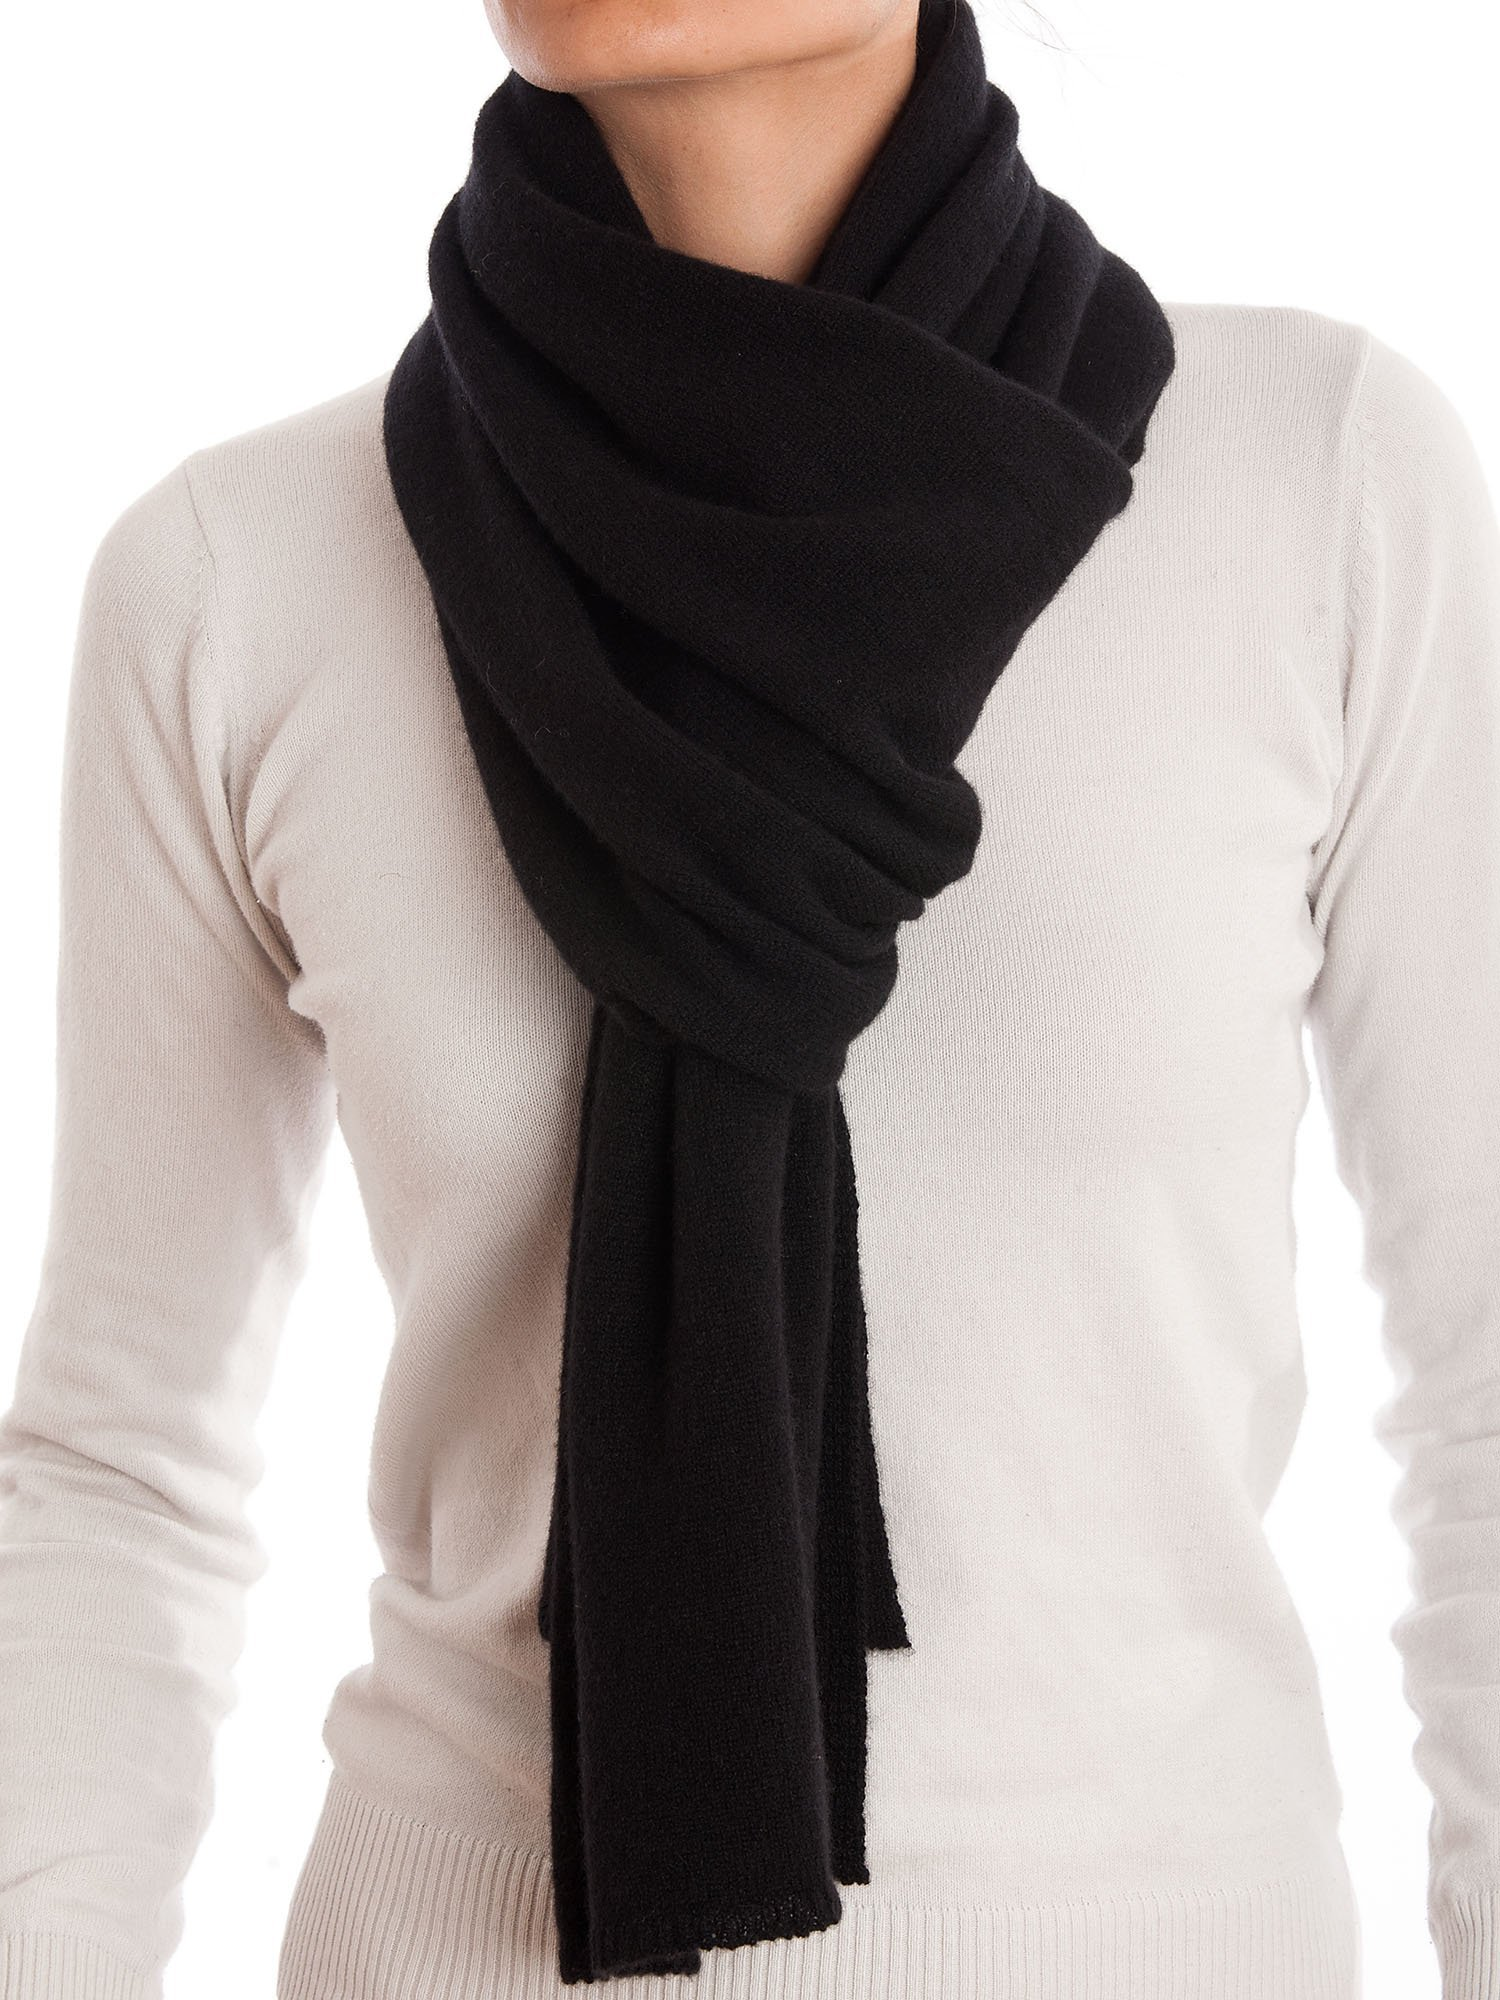 Dalle Piane Cashmere - Scarf 100% cashmere - Made in Italy - Woman/Man, Color: Black, One size